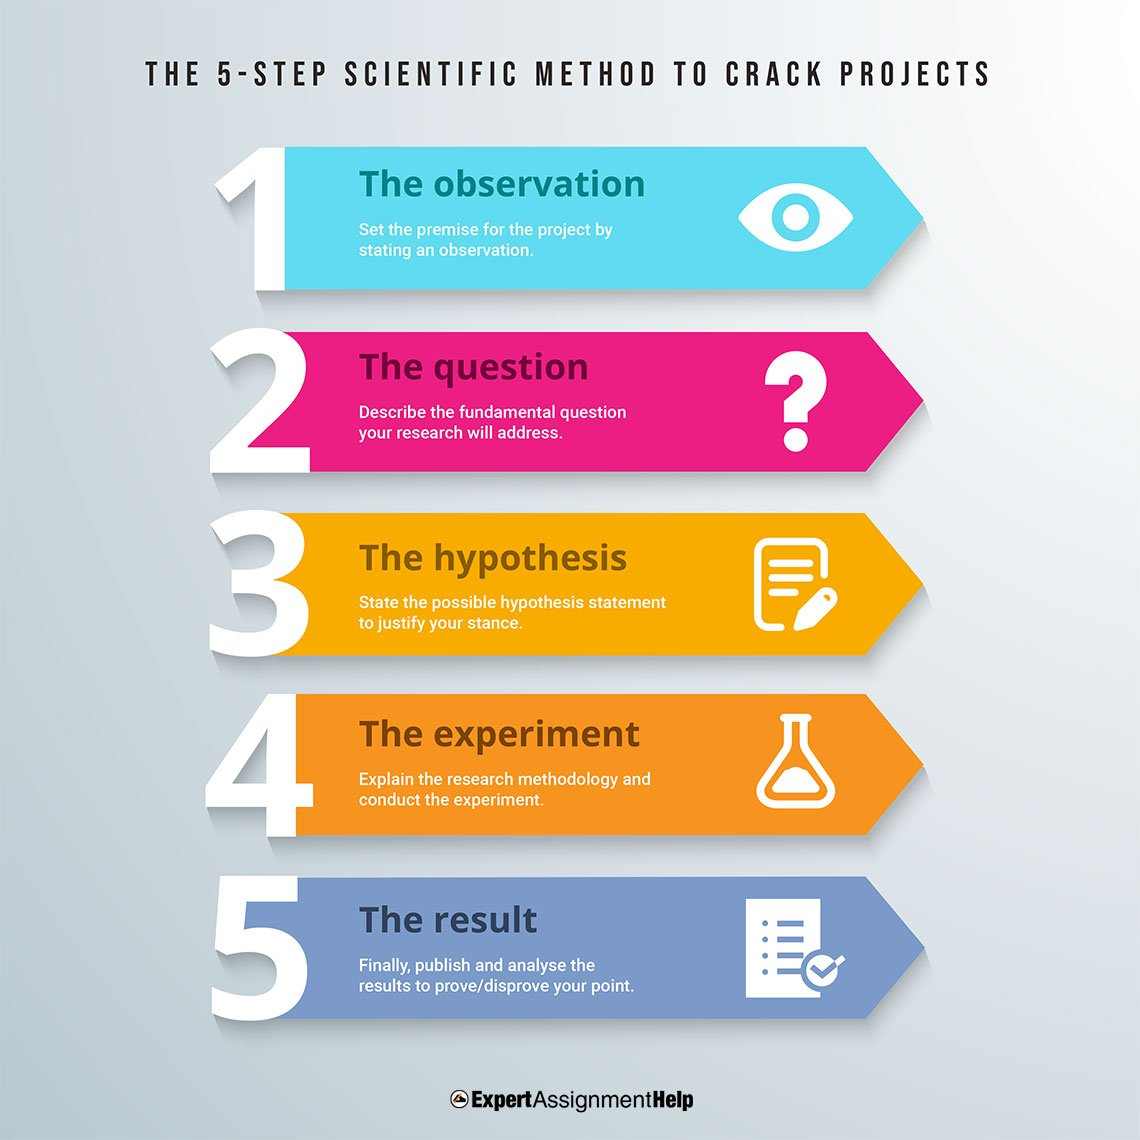 The 5-step scientific method to crack projects